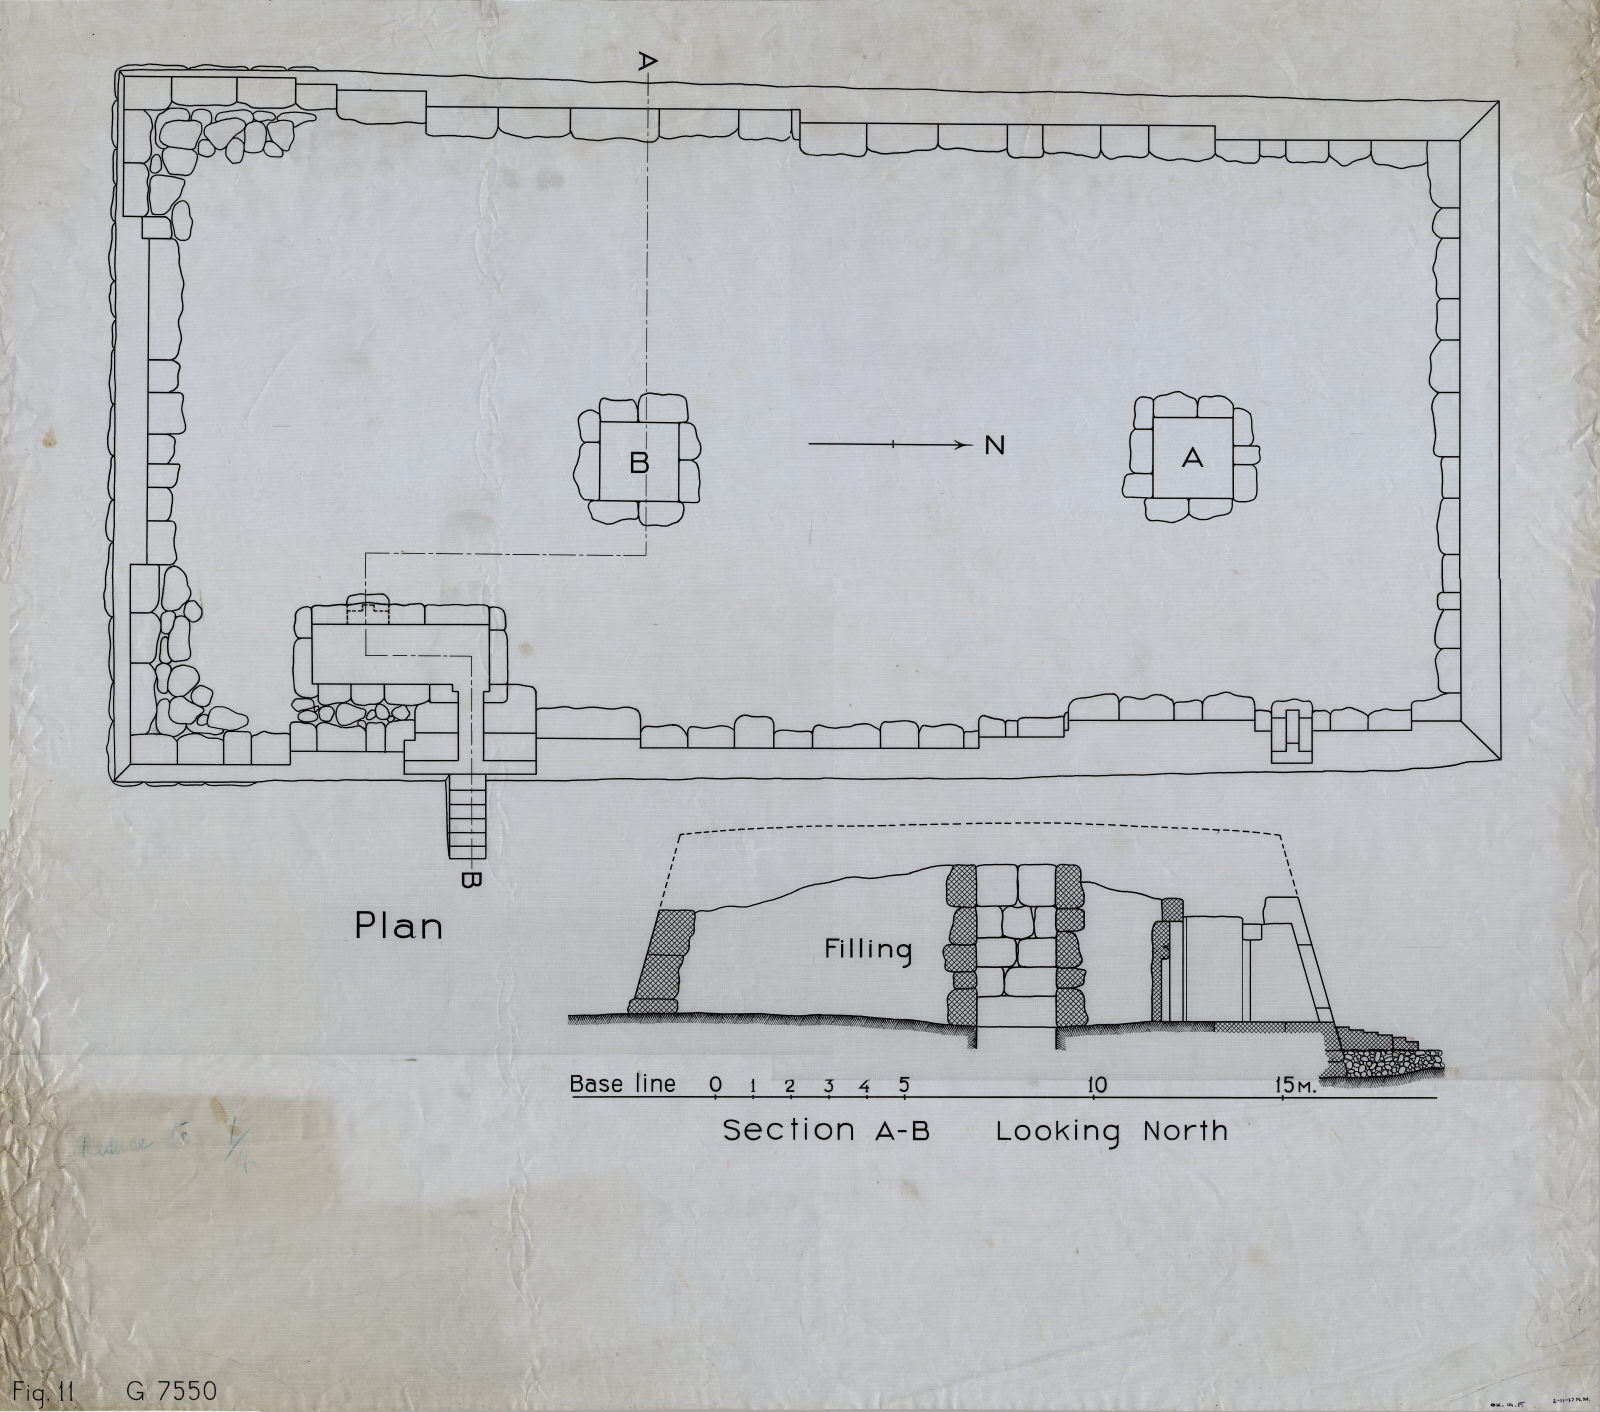 Maps and plans: G 7550, Plan and section